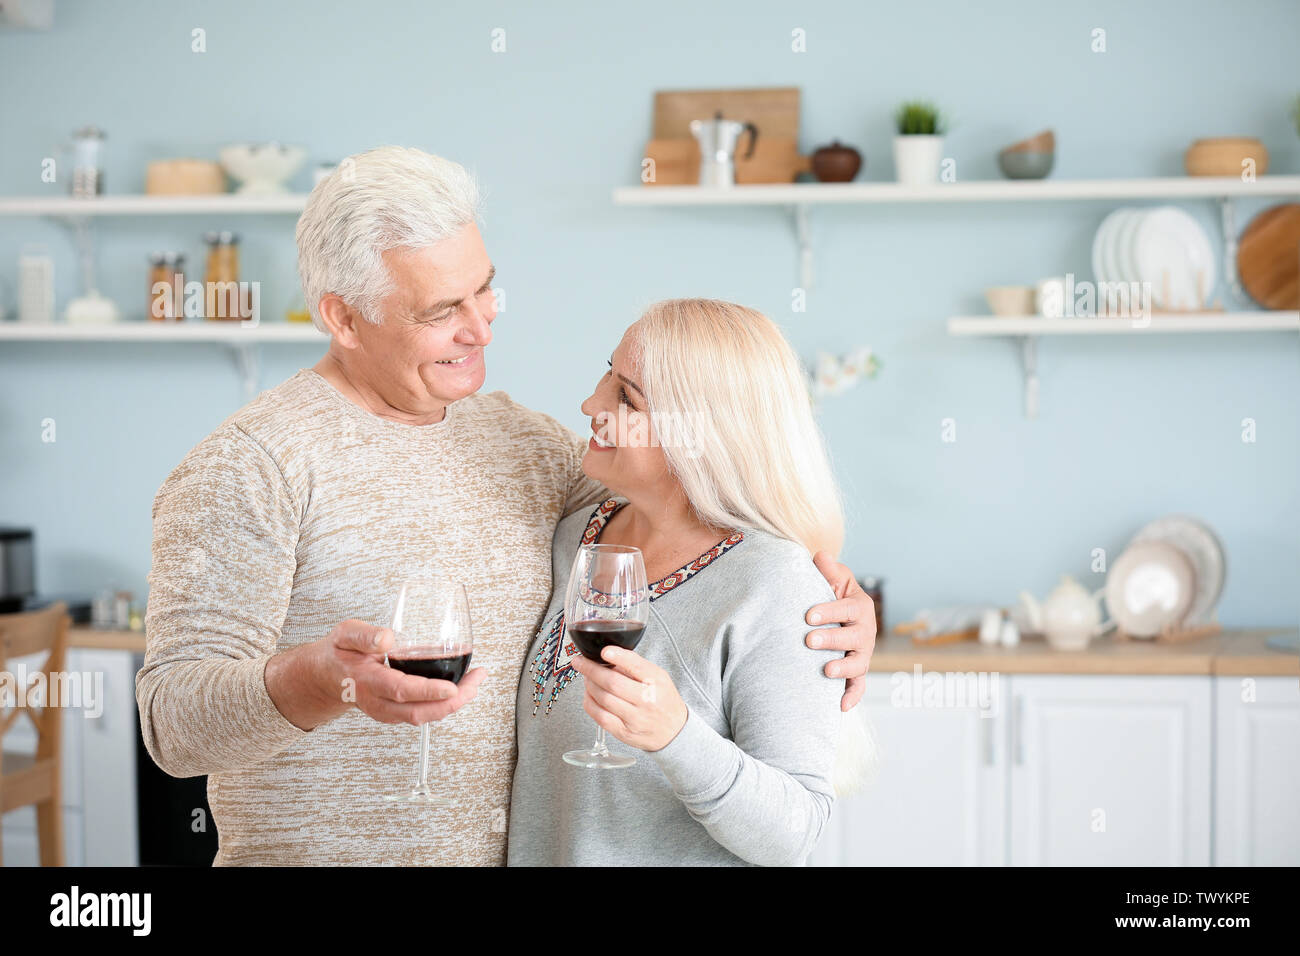 Happy mature couple drinking wine in kitchen - Stock Image